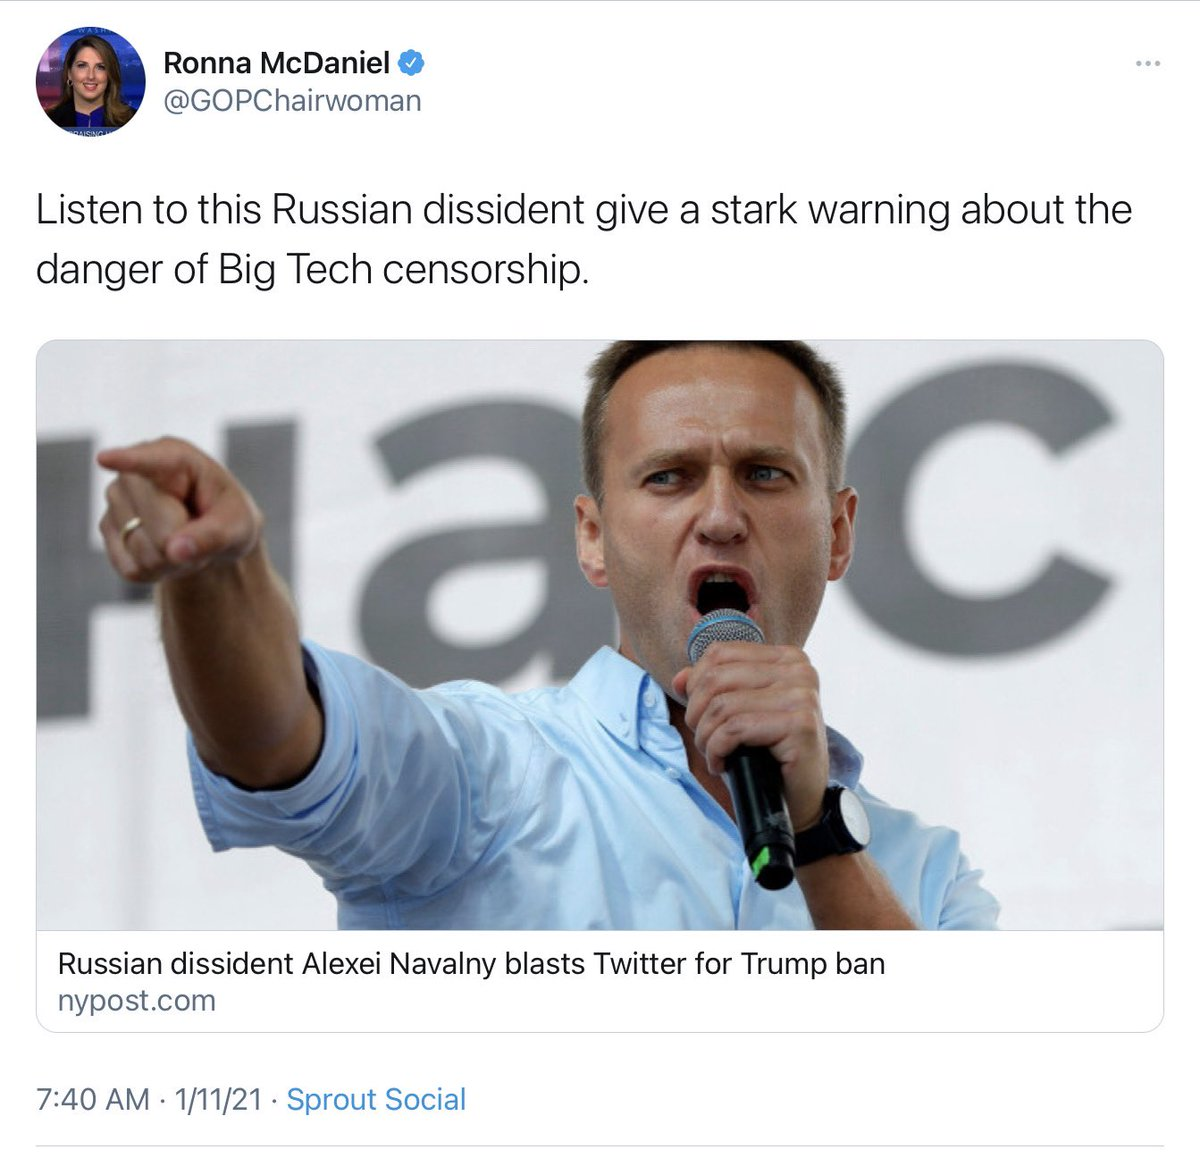 Russian activist survives murder attempts @GOP - <crickets>  Russian bounties for murder of US troops @GOP - <crickets>  Russian activist criticized US tech company @GOPChairwoman - LISTEN TO HIM!!!!  @GOP - caring more about lost Twitter followers than lost lives.